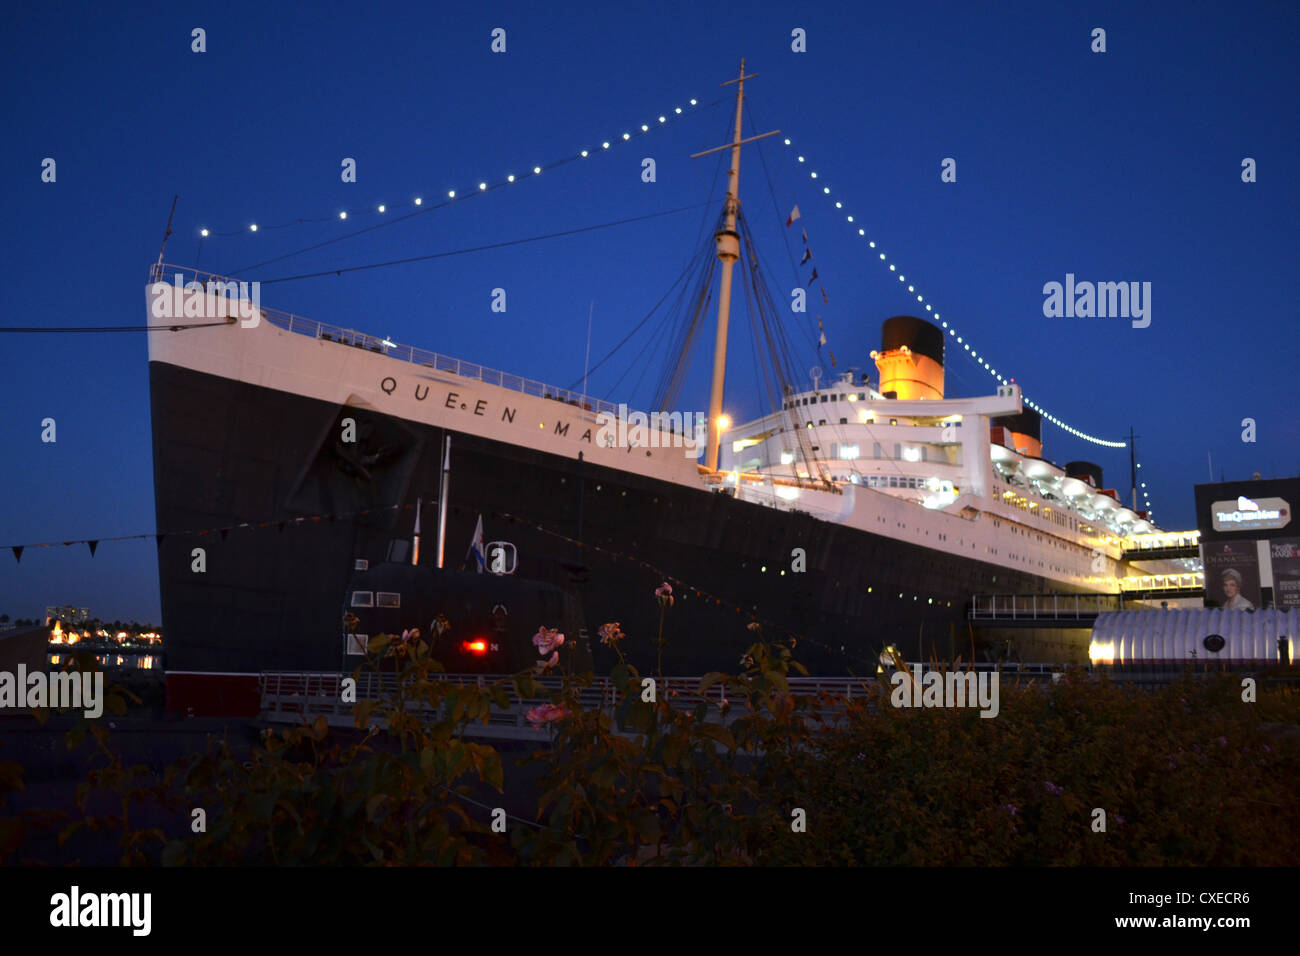 RMS Queen Mary at night, Long Beach, California - Stock Image